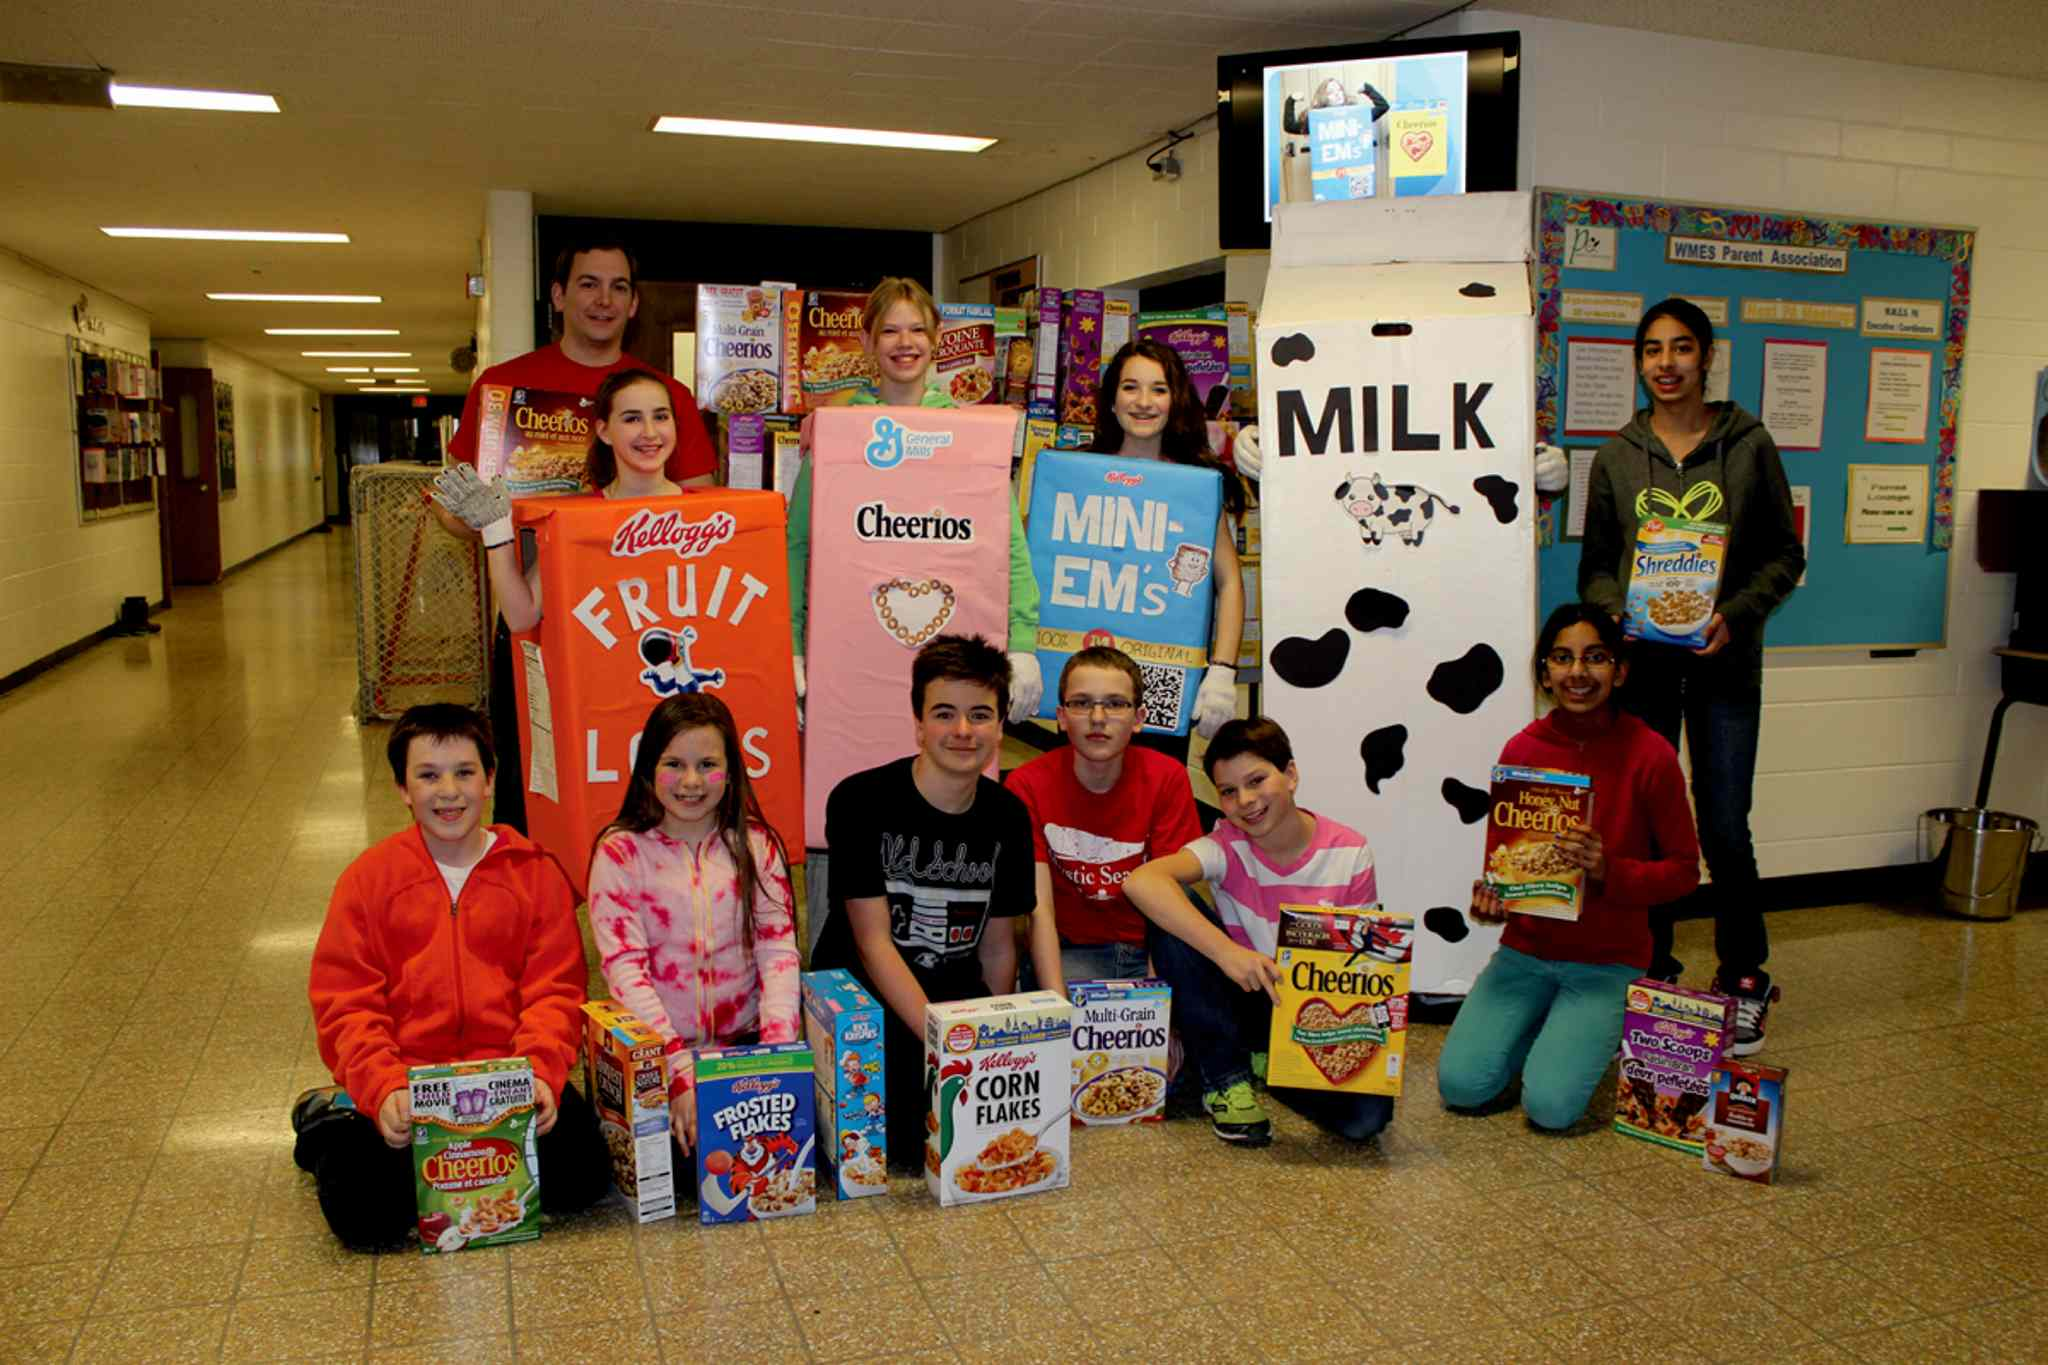 Students and faculty are pictured with some of the donations. Top row: Mr. Thiessen, Sarah Kovacs, Jennifer Einarson, Emma Houldsworth, Tae Yeop Kim (in milk container costume), and Nisha Dhaliwal. Bottom row: Ethan Dyck, Ashley Bull, Ryan Lewis, Ben Ulmer, Braydon Labossiere, and Imtiaz Sidhu.